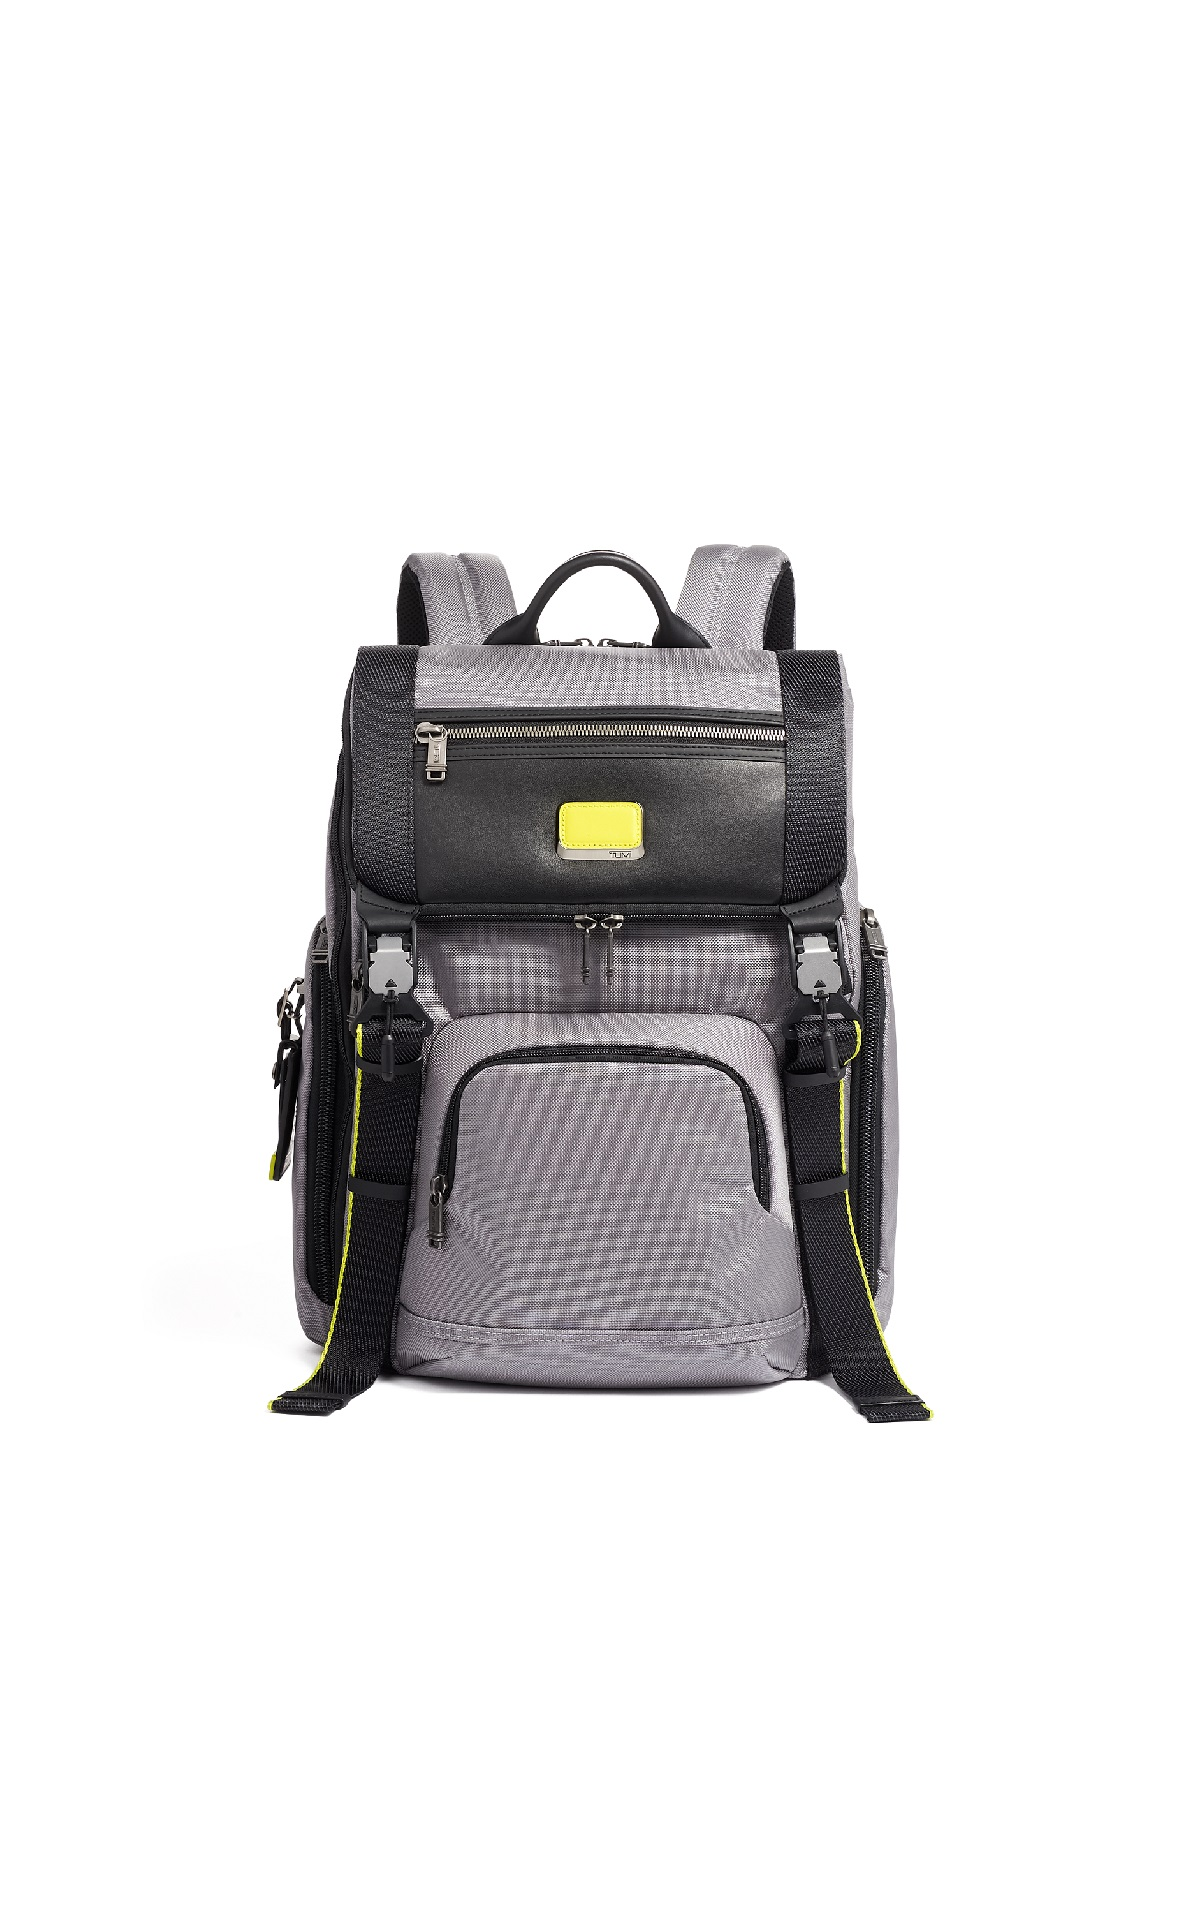 Lark backpack Tumi